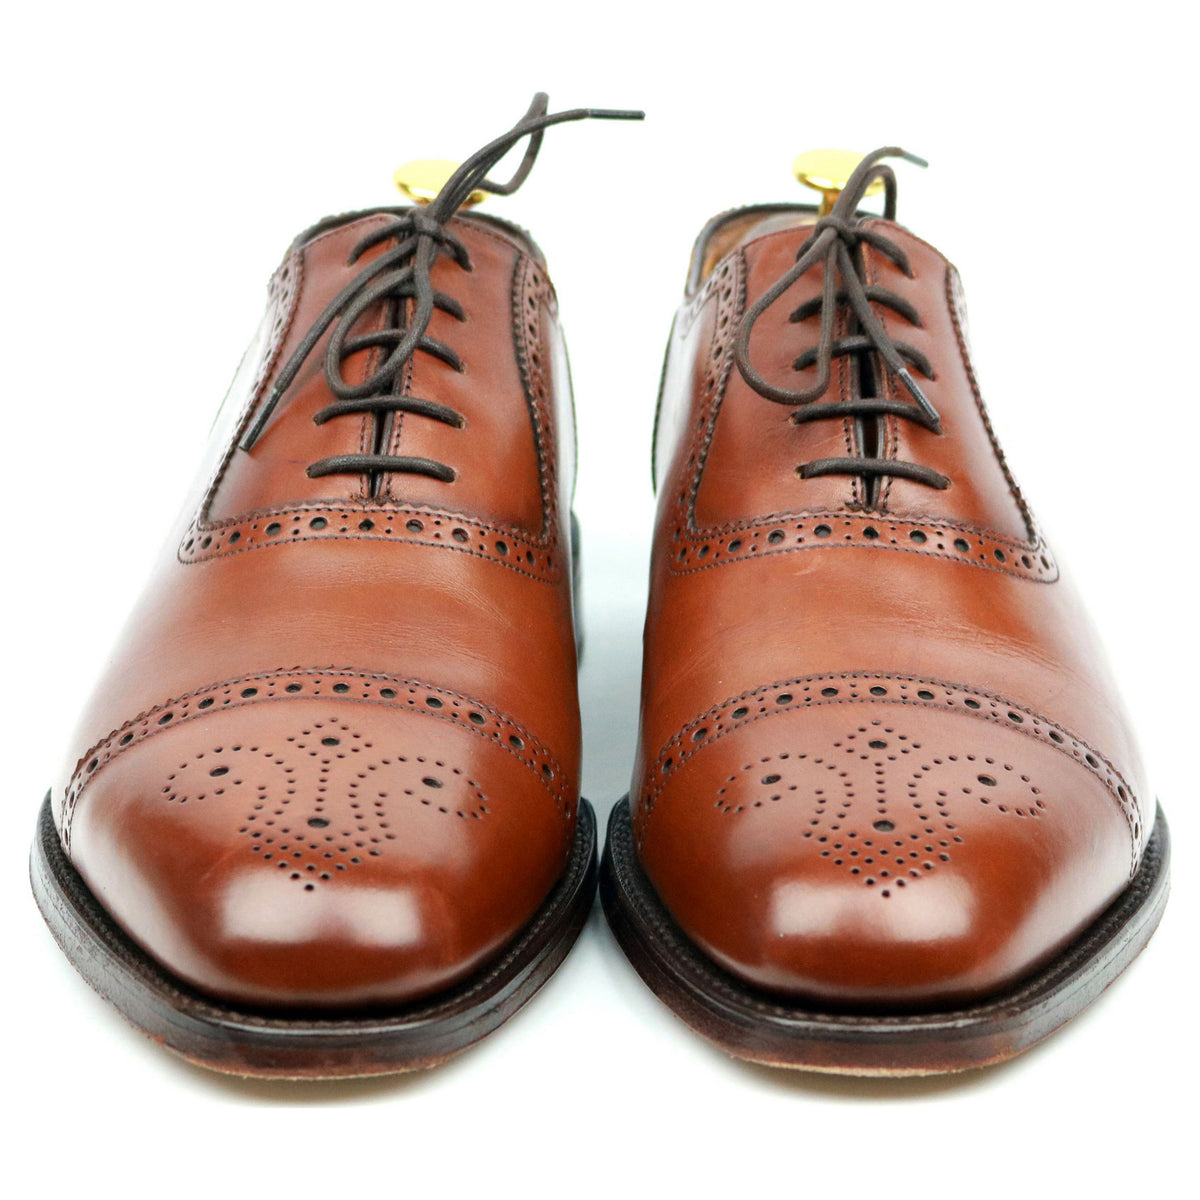 Loake 1880 'Strand' Tan Brown Leather Oxford Semi Brogues UK 8.5 F